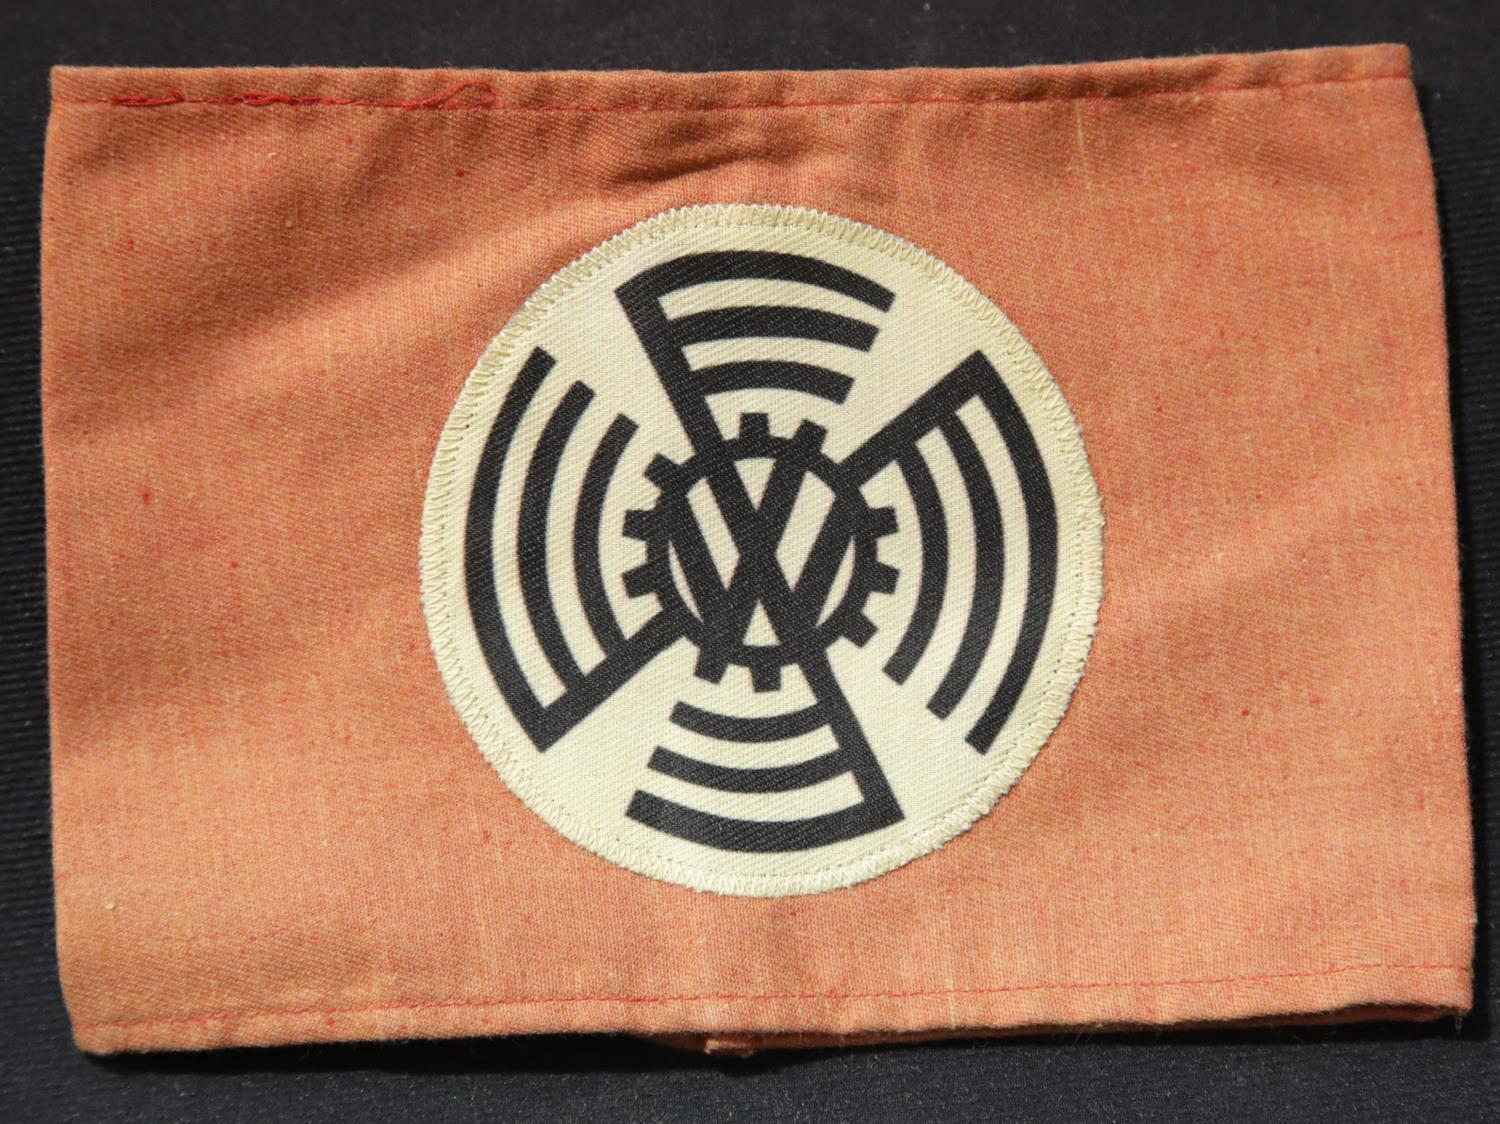 Lot 241 - WWII style early KDF VW factory workers armband. P&P Group 1 (£14+VAT for the first lot and £1+VAT